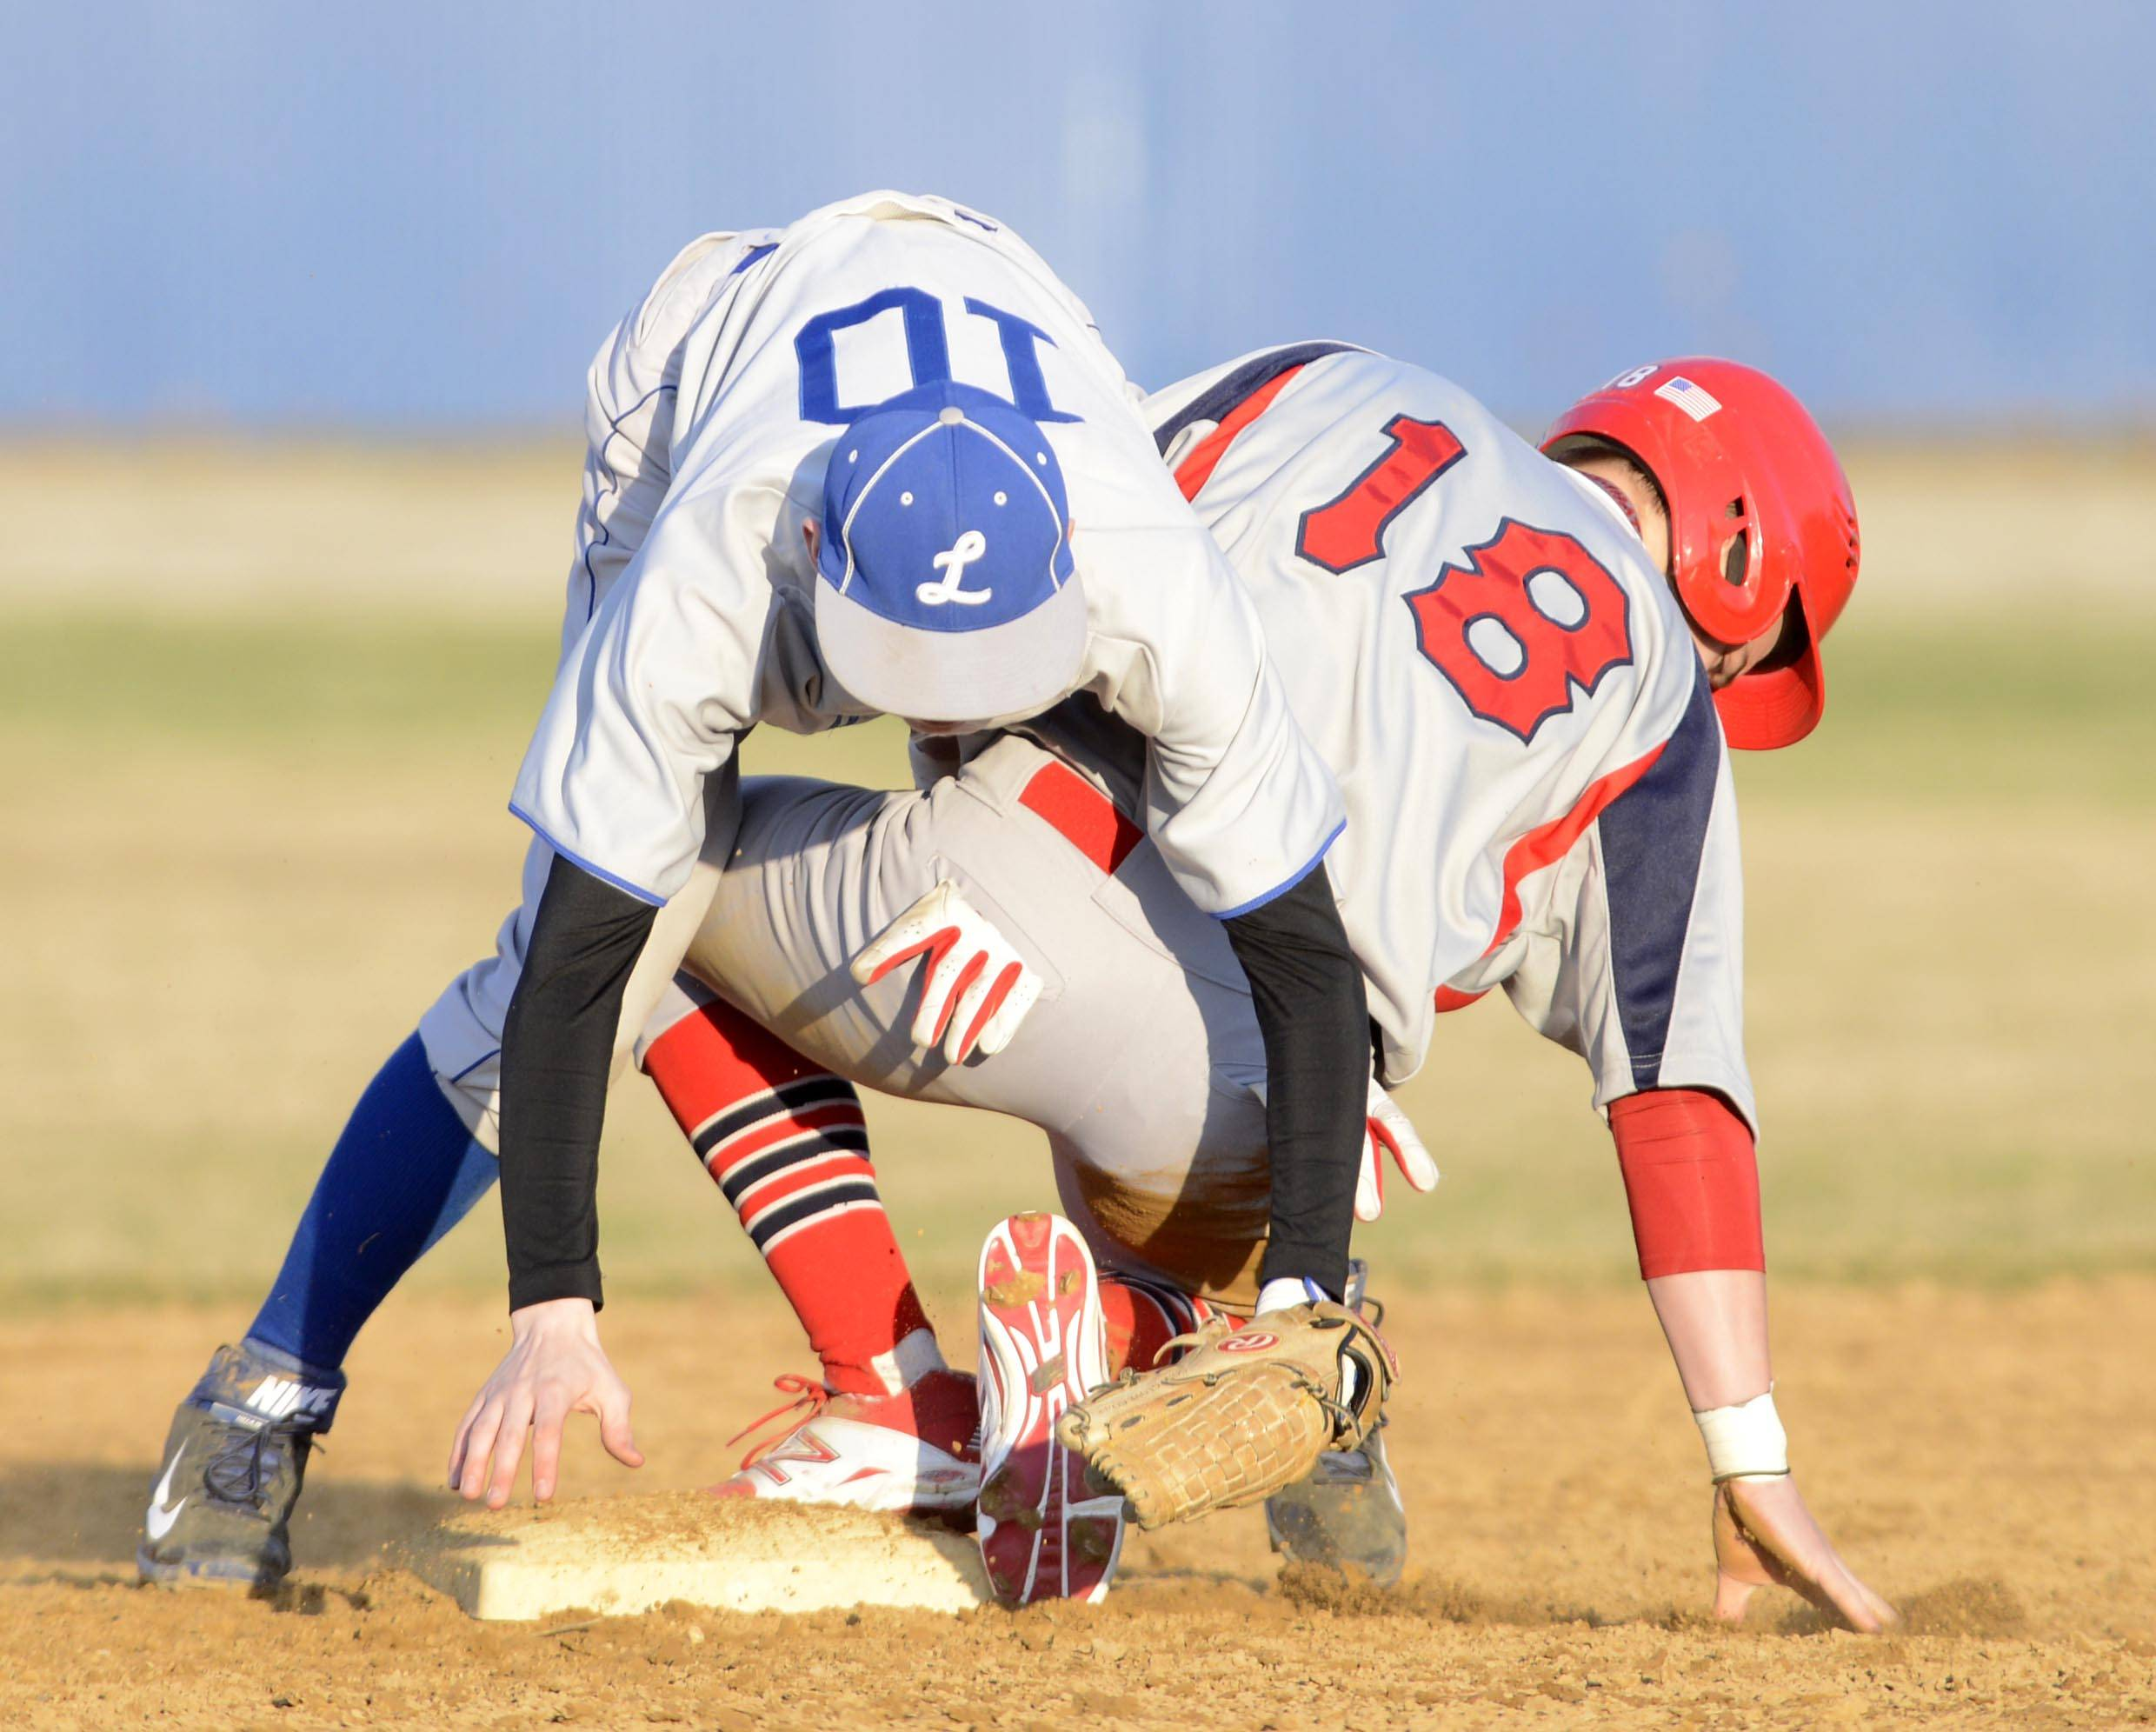 South Elgin's Nick Menken is safe at second as Larkin's Zach Edgar is late with the tag Tuesday in Elgin.